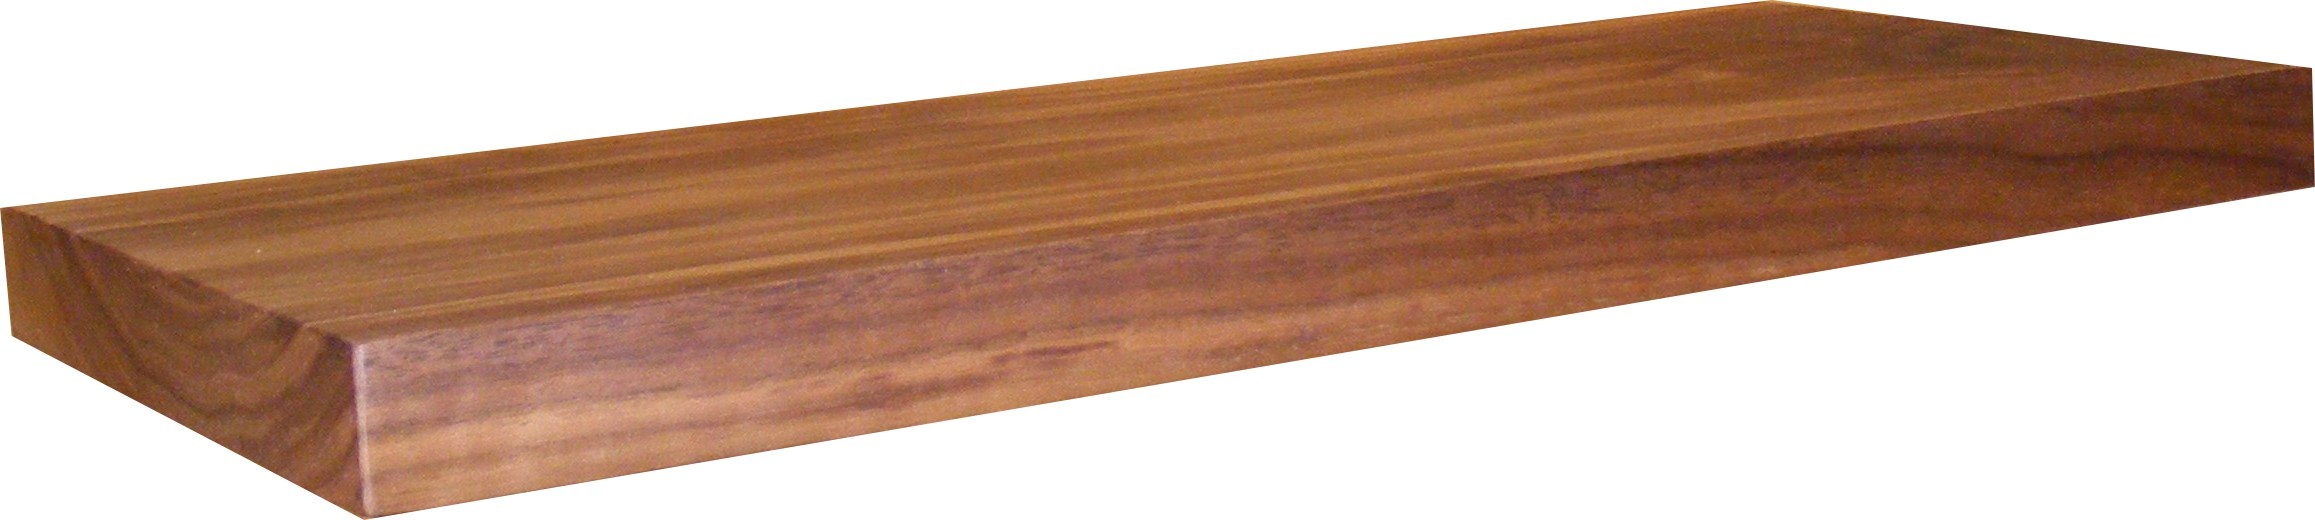 Solid American Black Walnut Floating Shelf - 50mm Thick